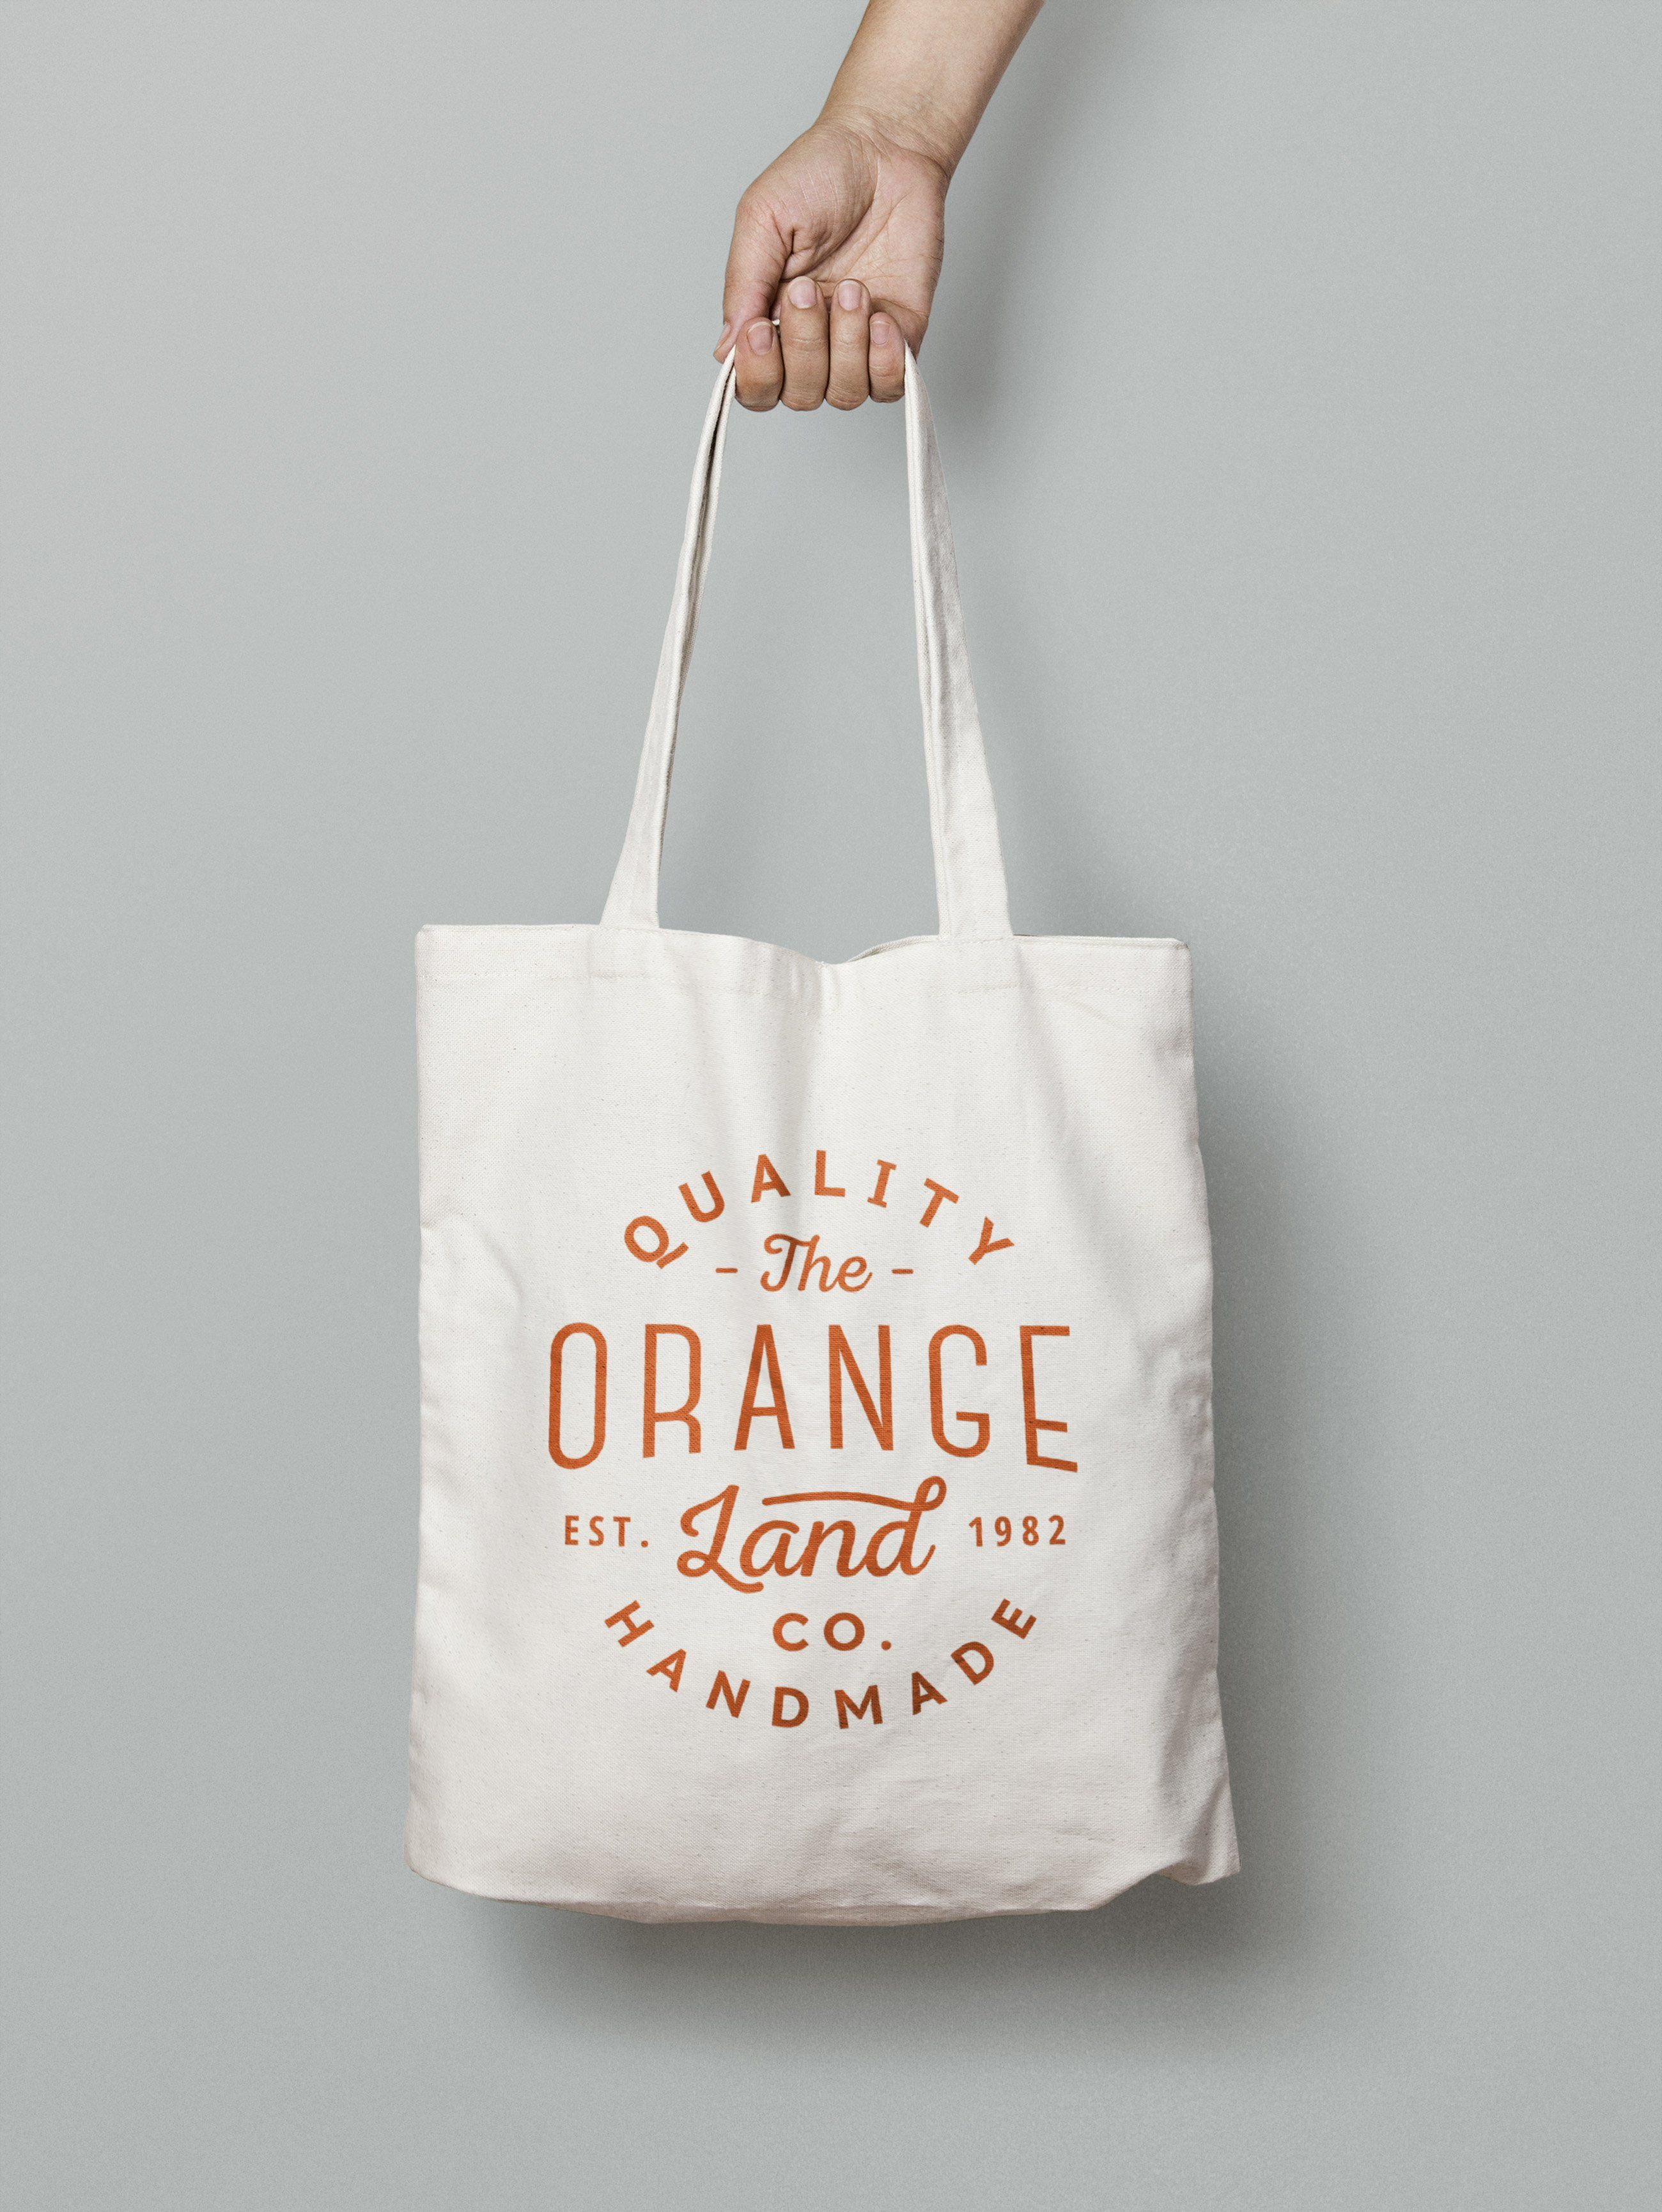 Download Featuring The Eye Watering Mockup Of White Canvas Tote Bag Mockup This Is A Downloadable Free Psd File Brought To You Bag Mockup Canvas Tote Bags Free Canvas